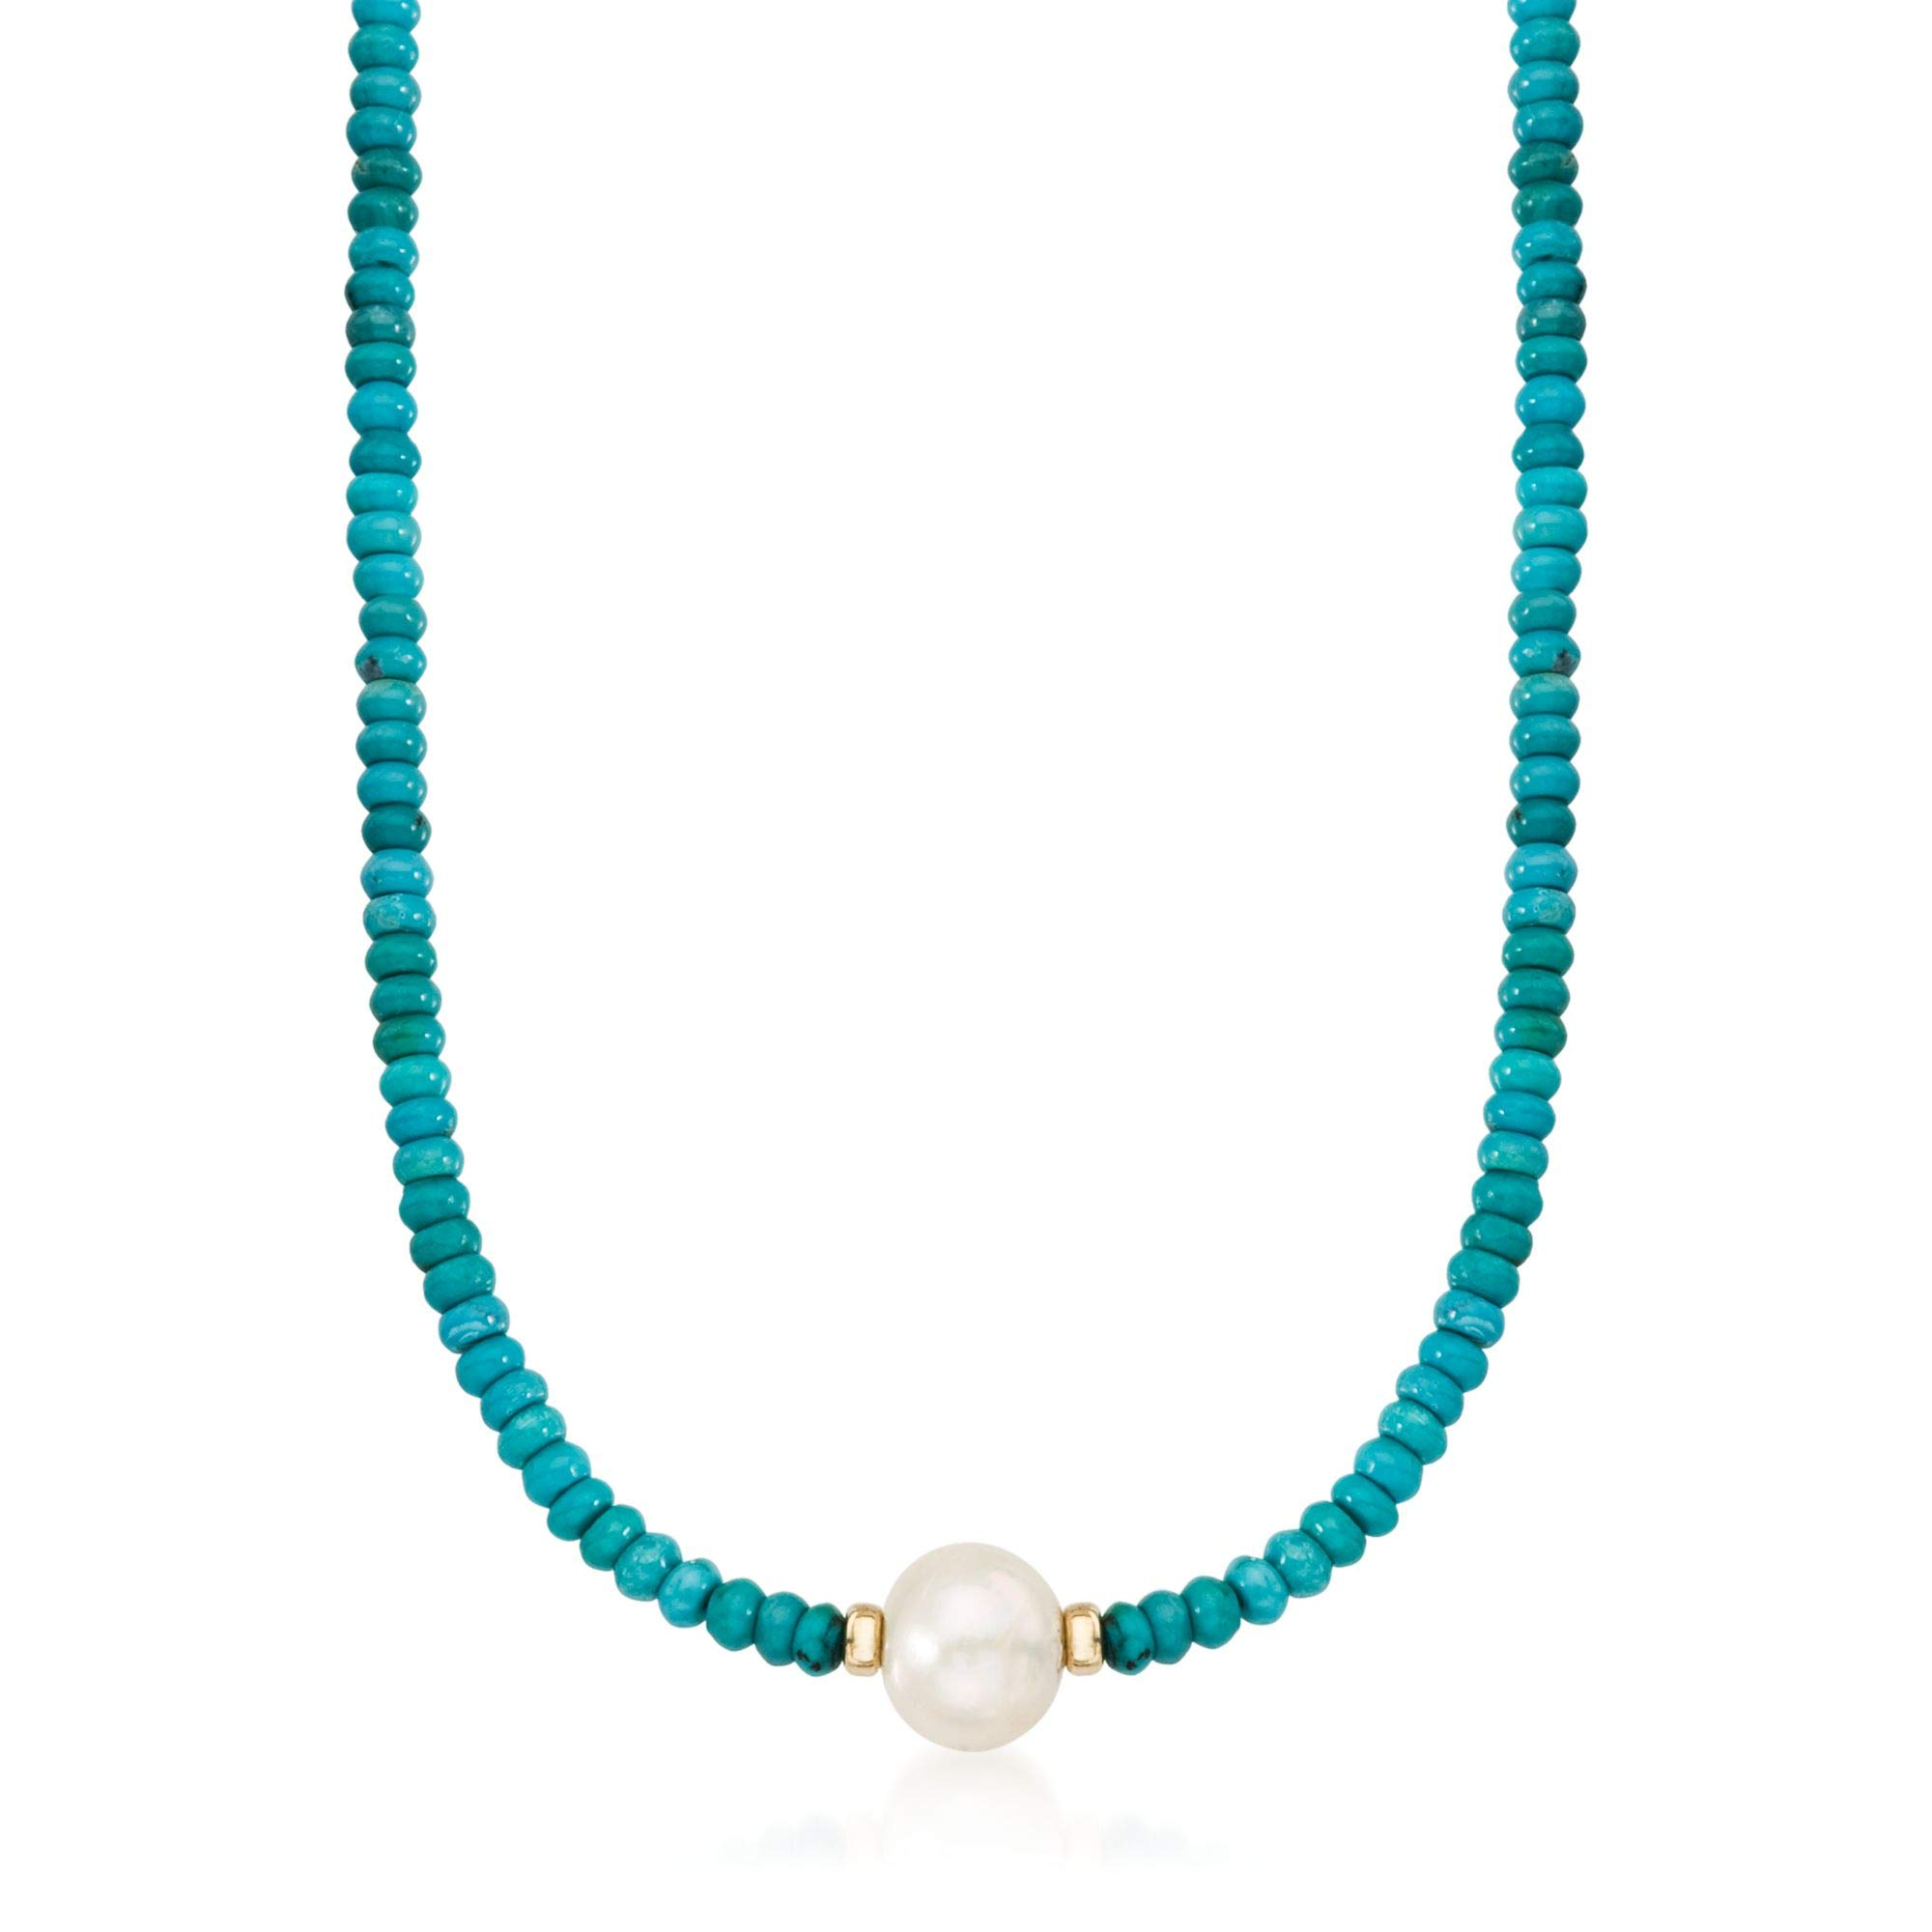 Ross-Simons Turquoise Bead and 12-13mm Cultured Pearl Necklace in 14kt Yellow Gold by Ross-Simons